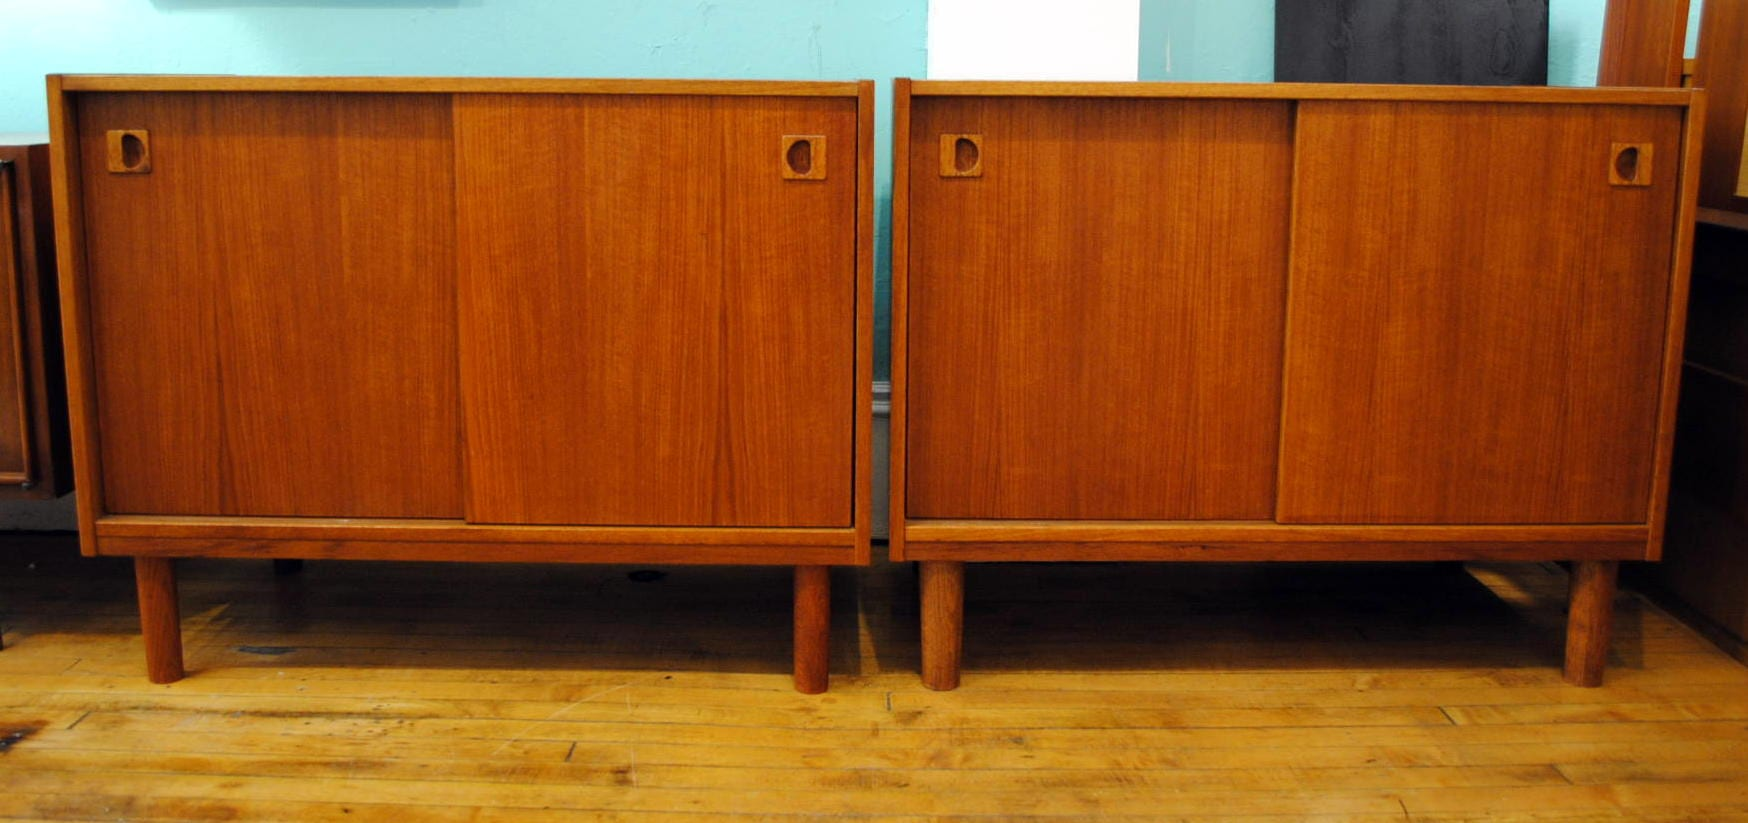 Danish Teak Cabinets 2 Available